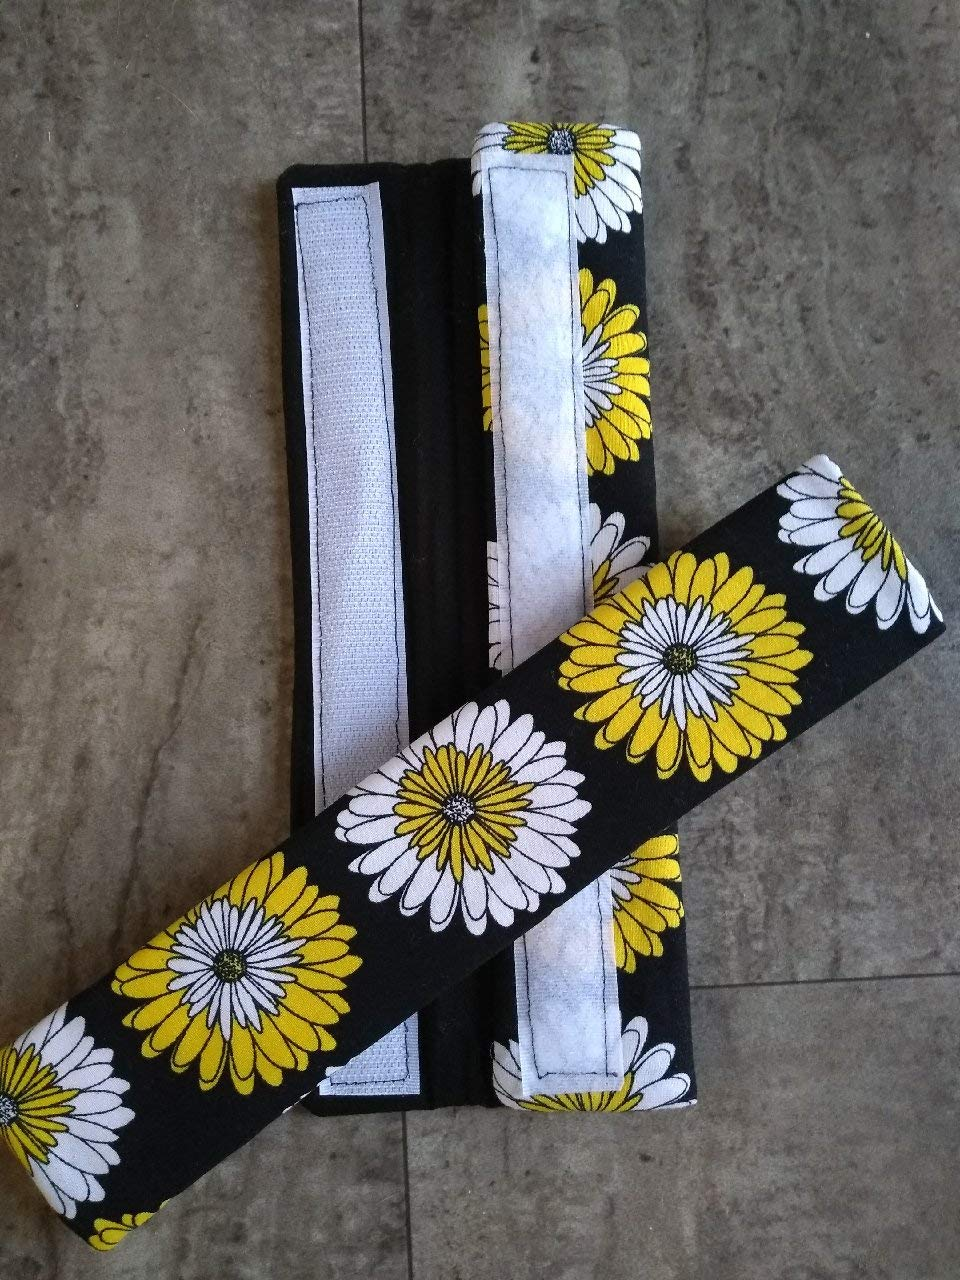 Set of 2 Yellow Daisies Refrigerator Handle Covers